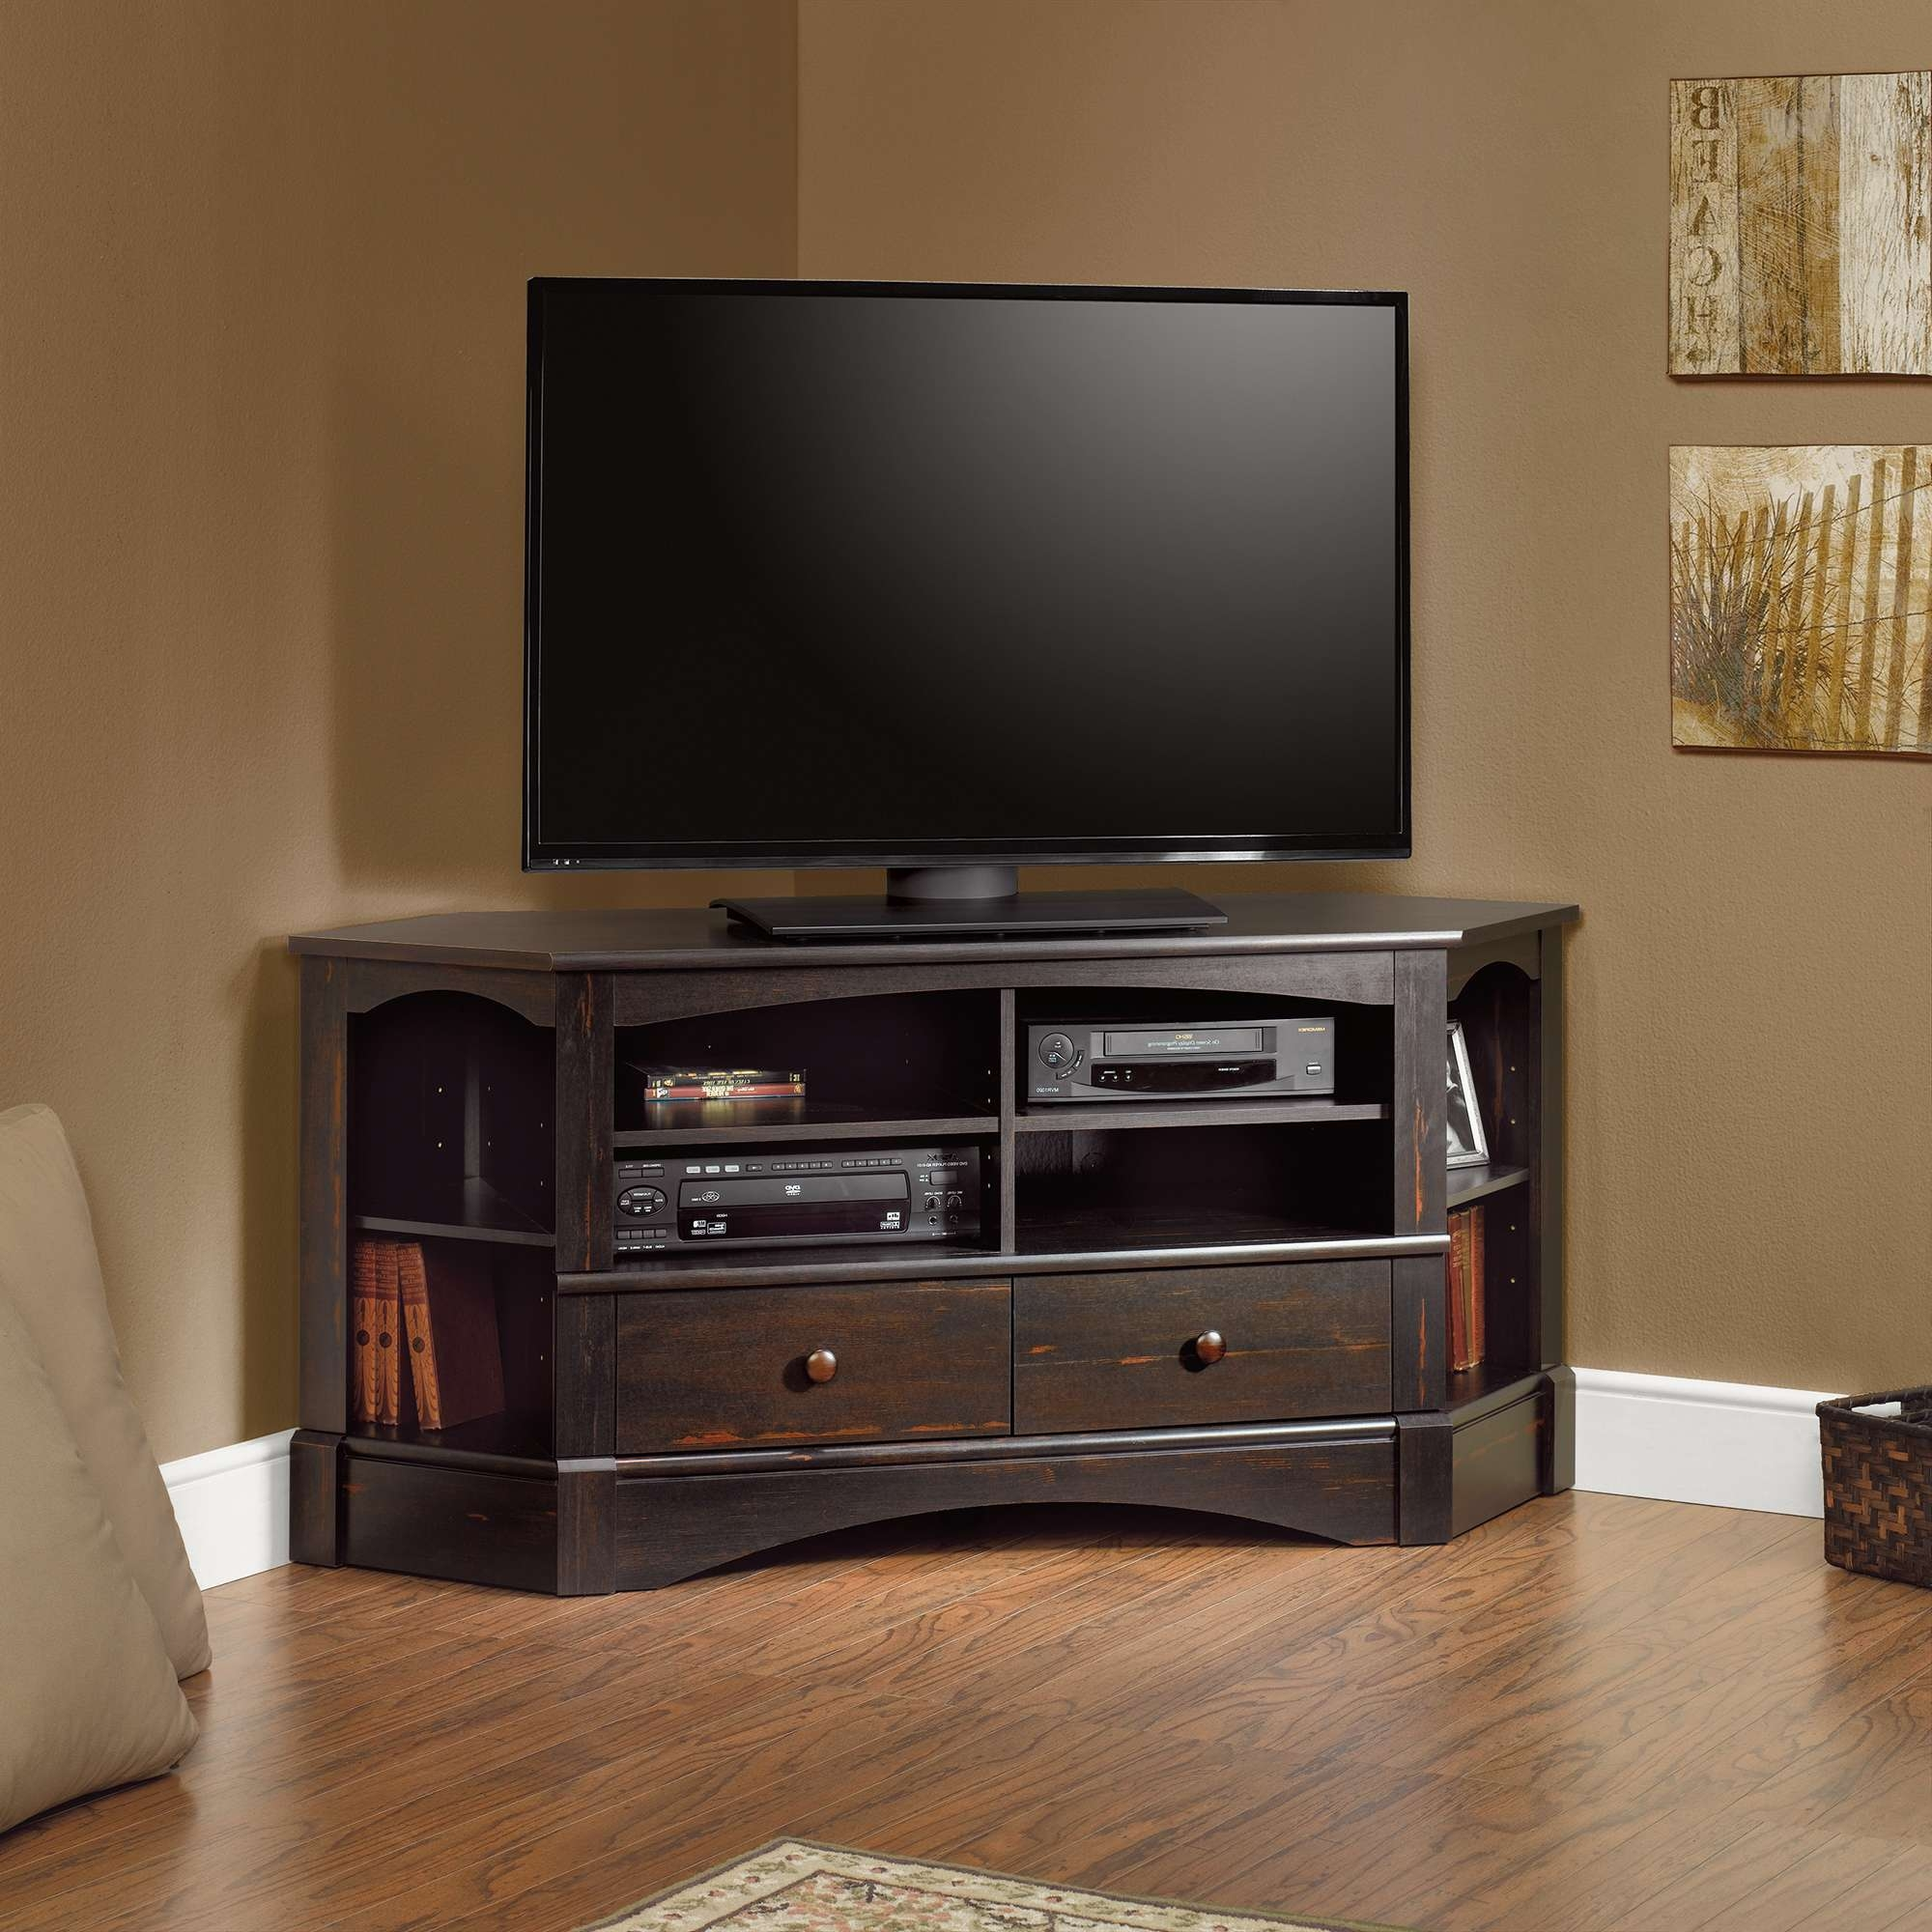 Harbor View | Corner Entertainment Credenza | 402902 | Sauder With Solid Wood Corner Tv Cabinets (View 7 of 20)